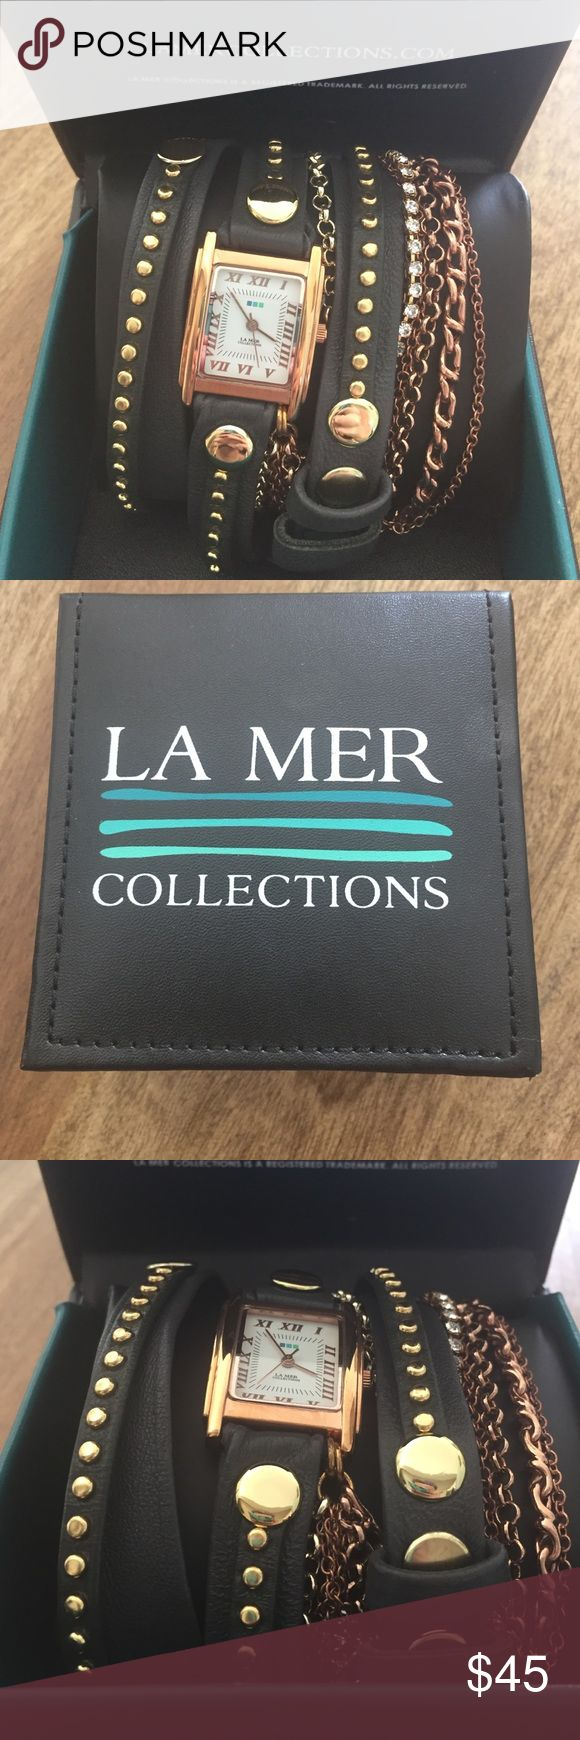 La Mer adjustable watch Rose gold, and charcoal Wrap watch new in box. La Mer rose gold, gold, charcoal and cubic zirconia. Super cute! Working. La Mer Accessories Watches